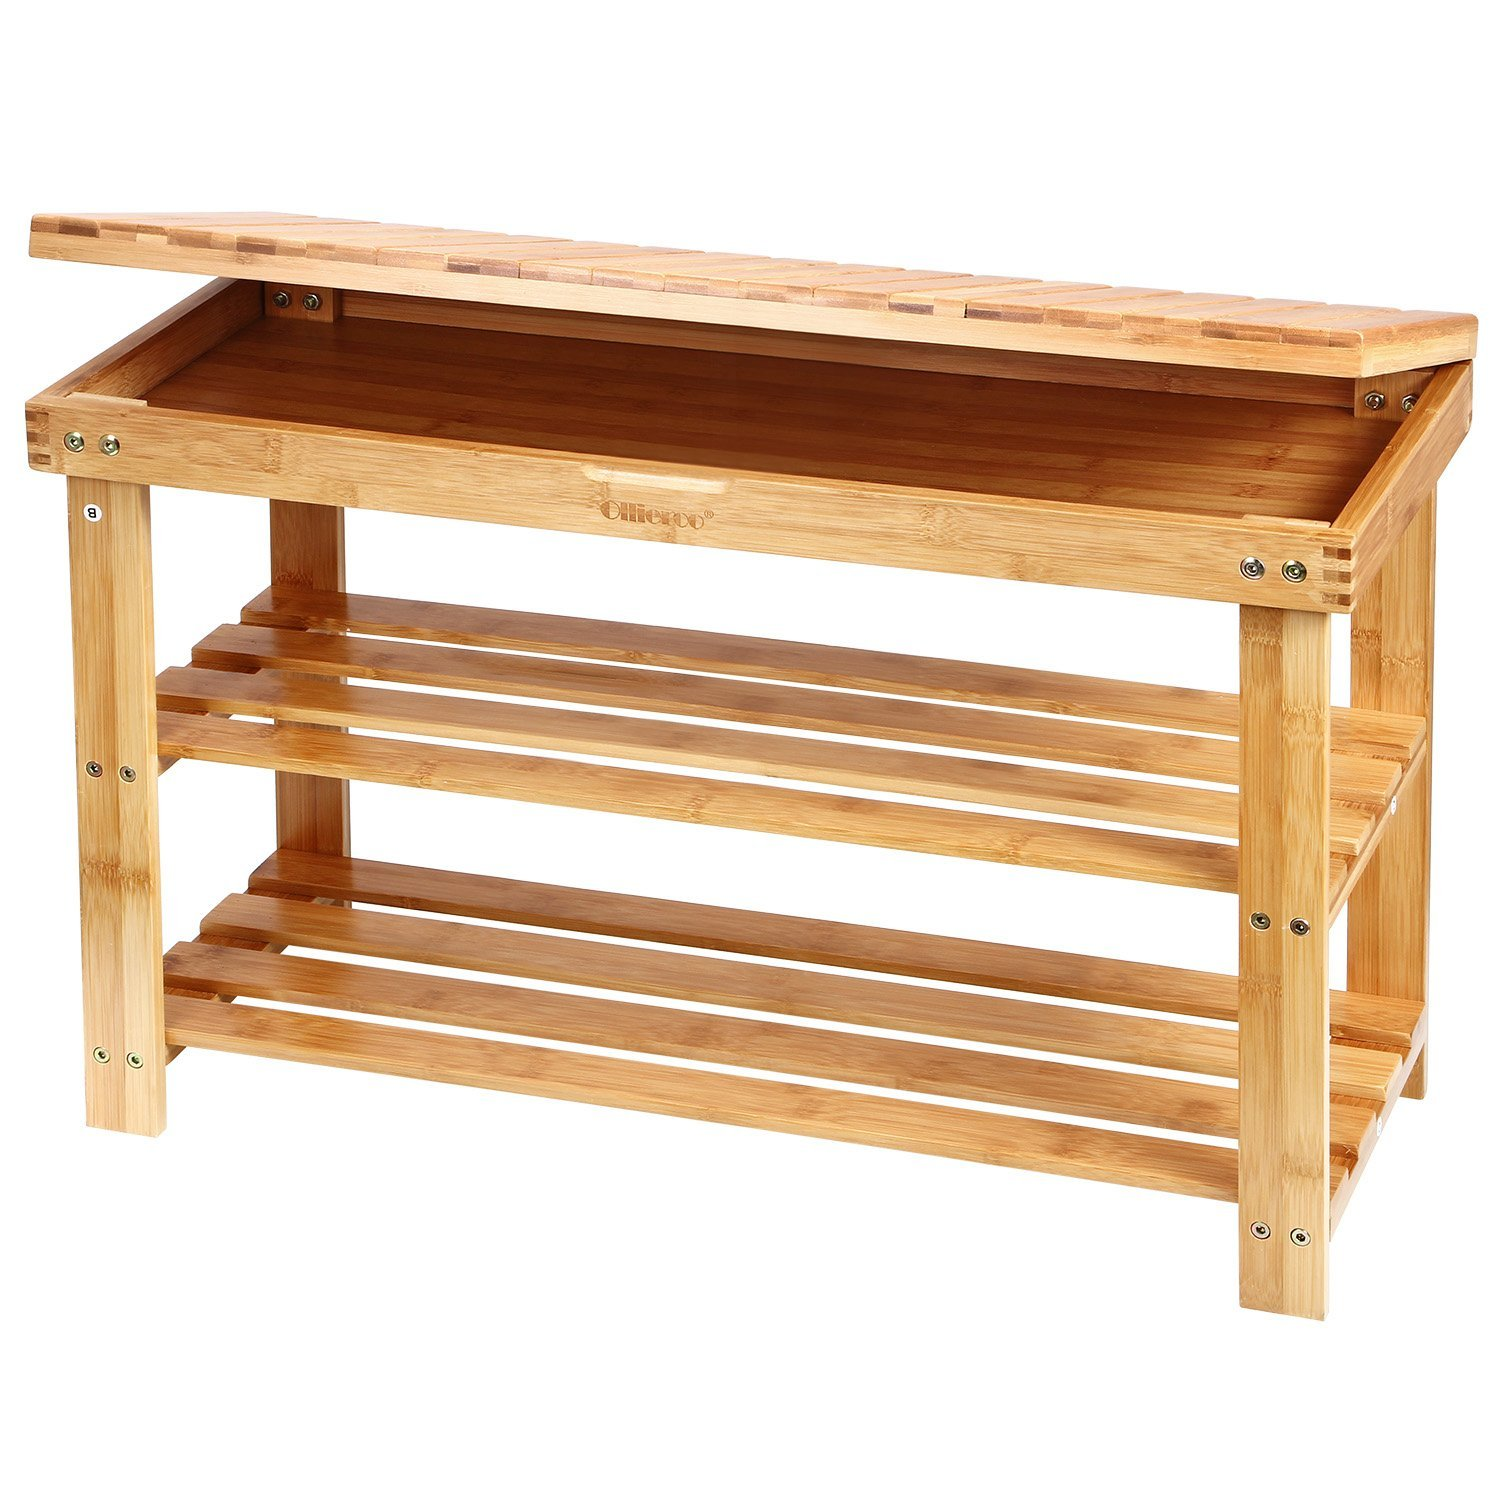 Ollieroo 2 Tier Entryway Natural Bamboo Shoe Rack Household Shelf Storage Bench Organizer Foot Stool with Storage Drawer